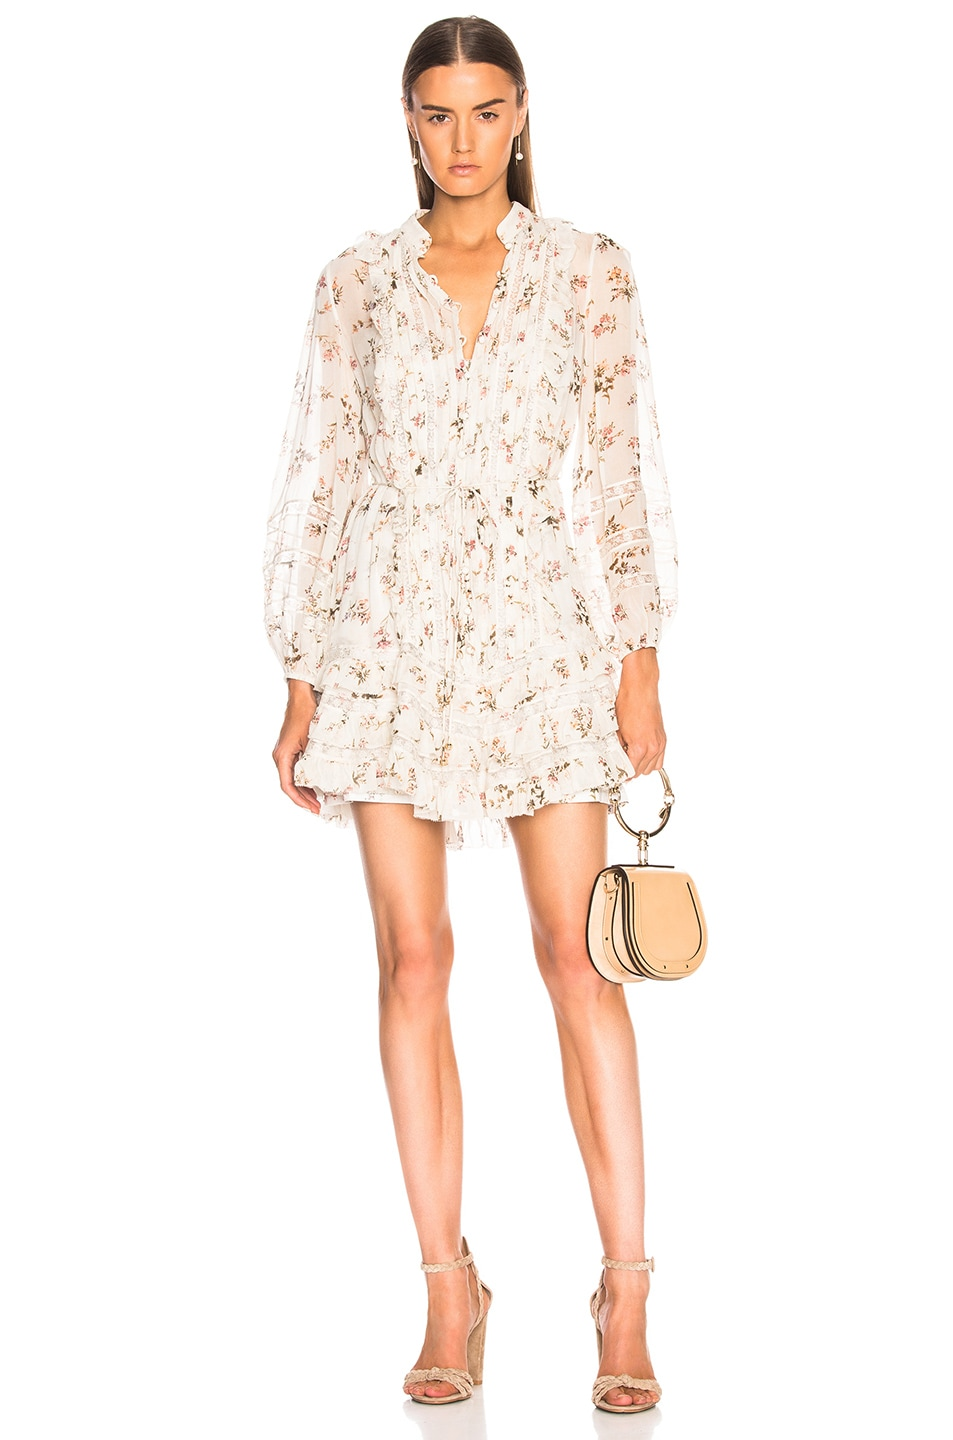 65c3fae12ab2 Image 1 of Zimmermann Breeze Pintuck Mini Dress in Cream Romantic Floral